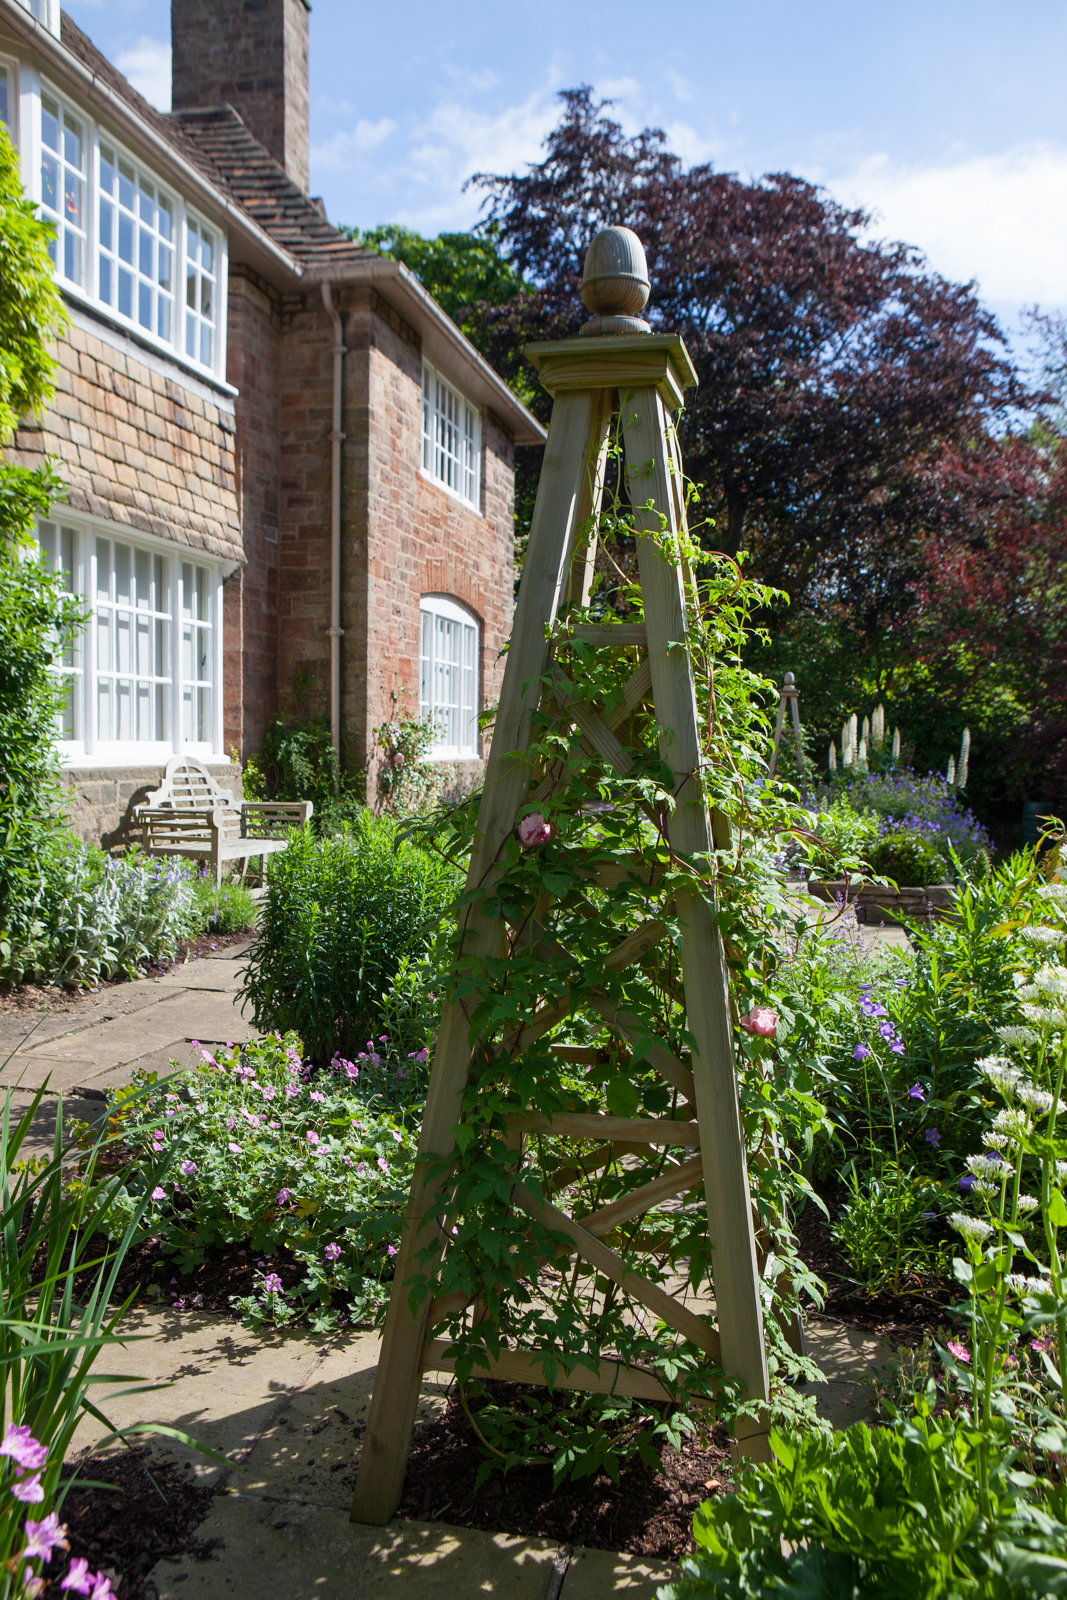 An Arts and Craft Terrace garden